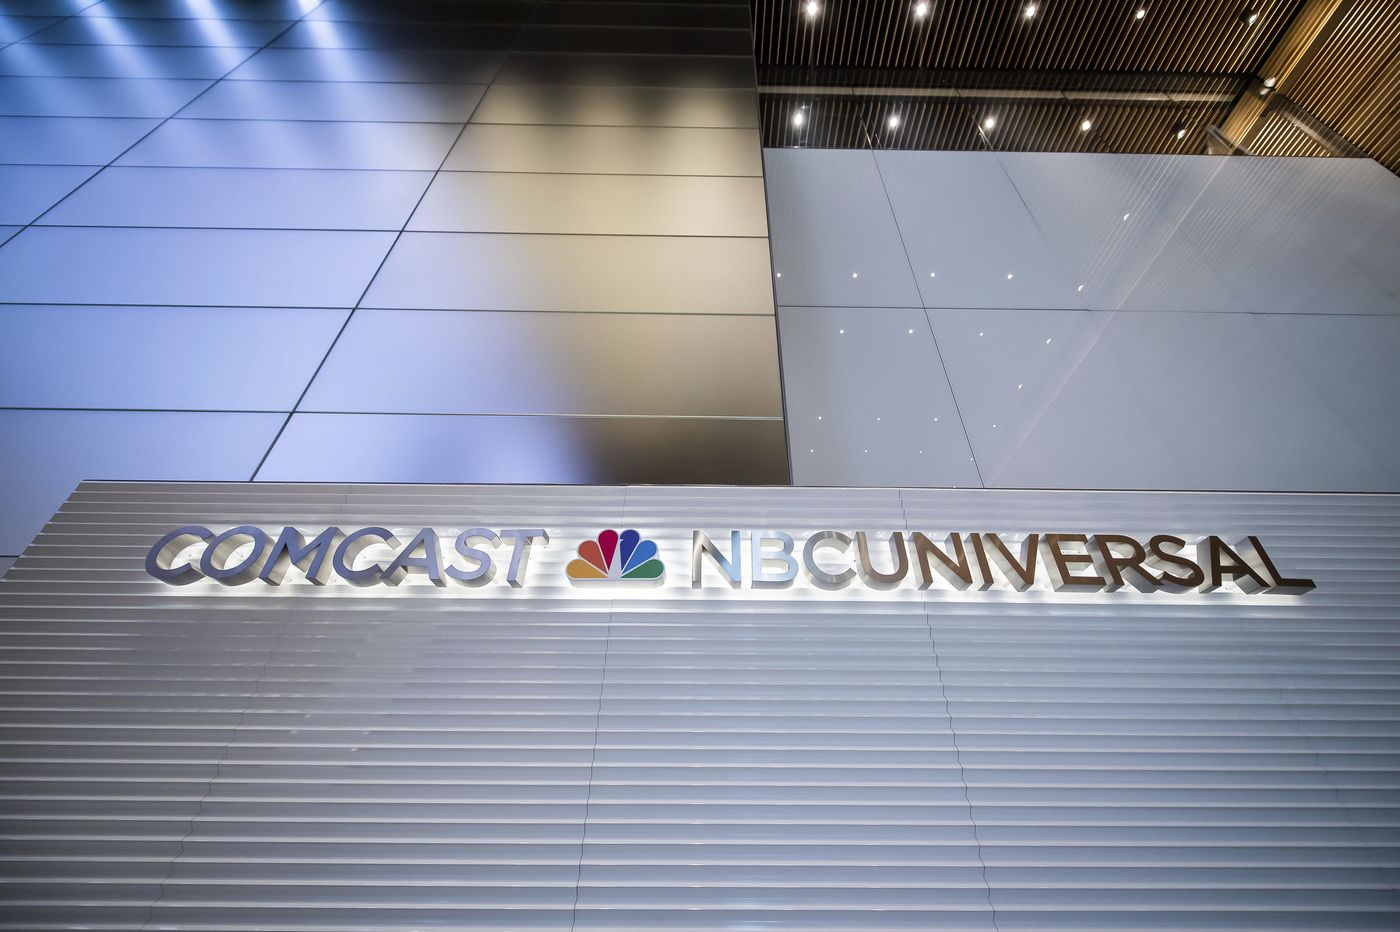 Comcast's latest earnings shows it's like a casino: 'The house always wins.' Cable shrinks while broadband booms.